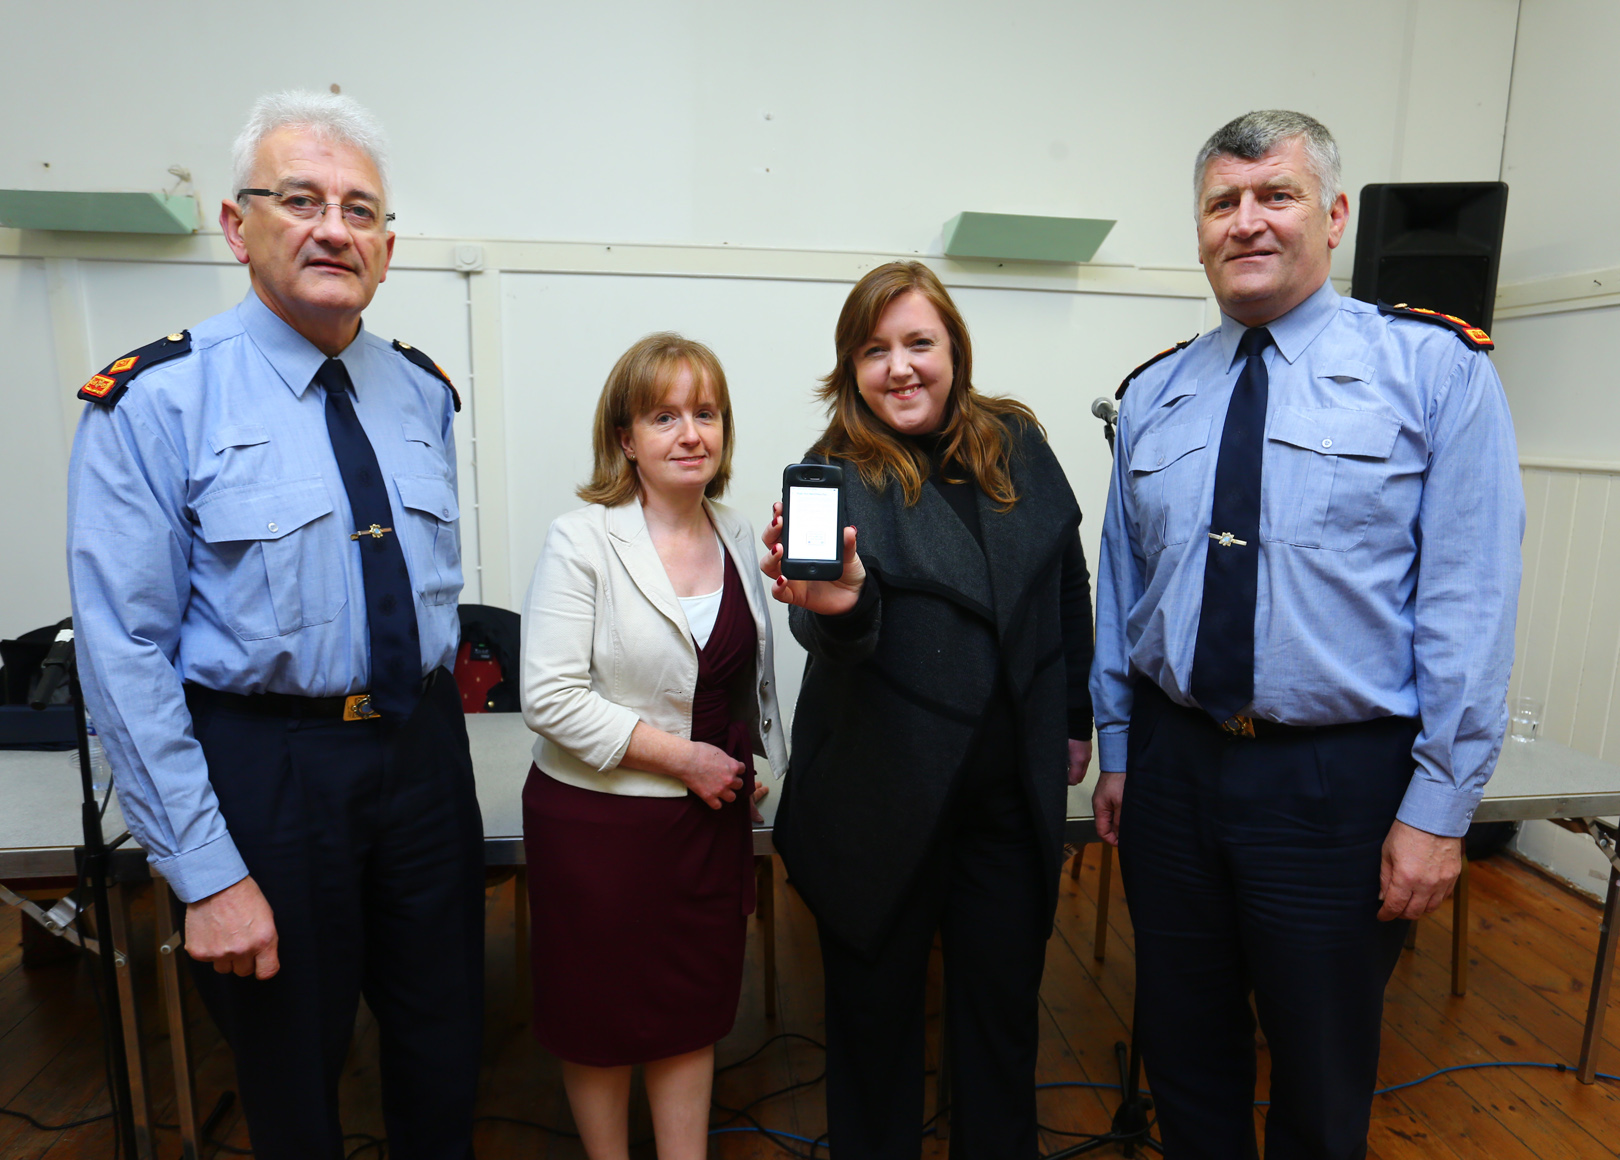 Superintendant Noel Carolan, Fiona Coloe, Lorraine Allen and Chief Superintendant Barry O'Brien at the launch of the Rush Text Alert service. Photo by Darren Kinsella